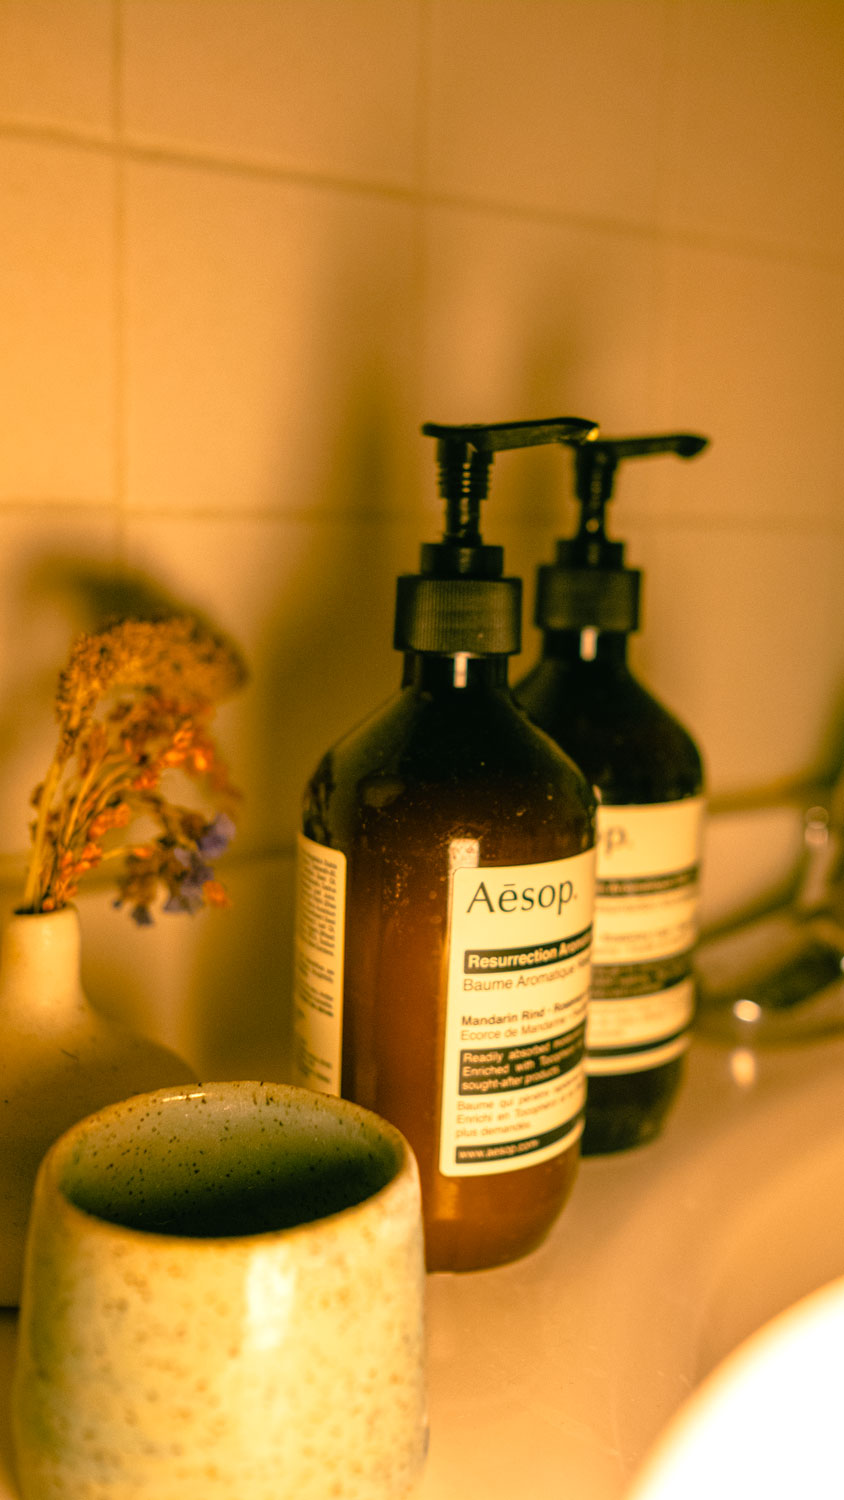 Free Aesop products